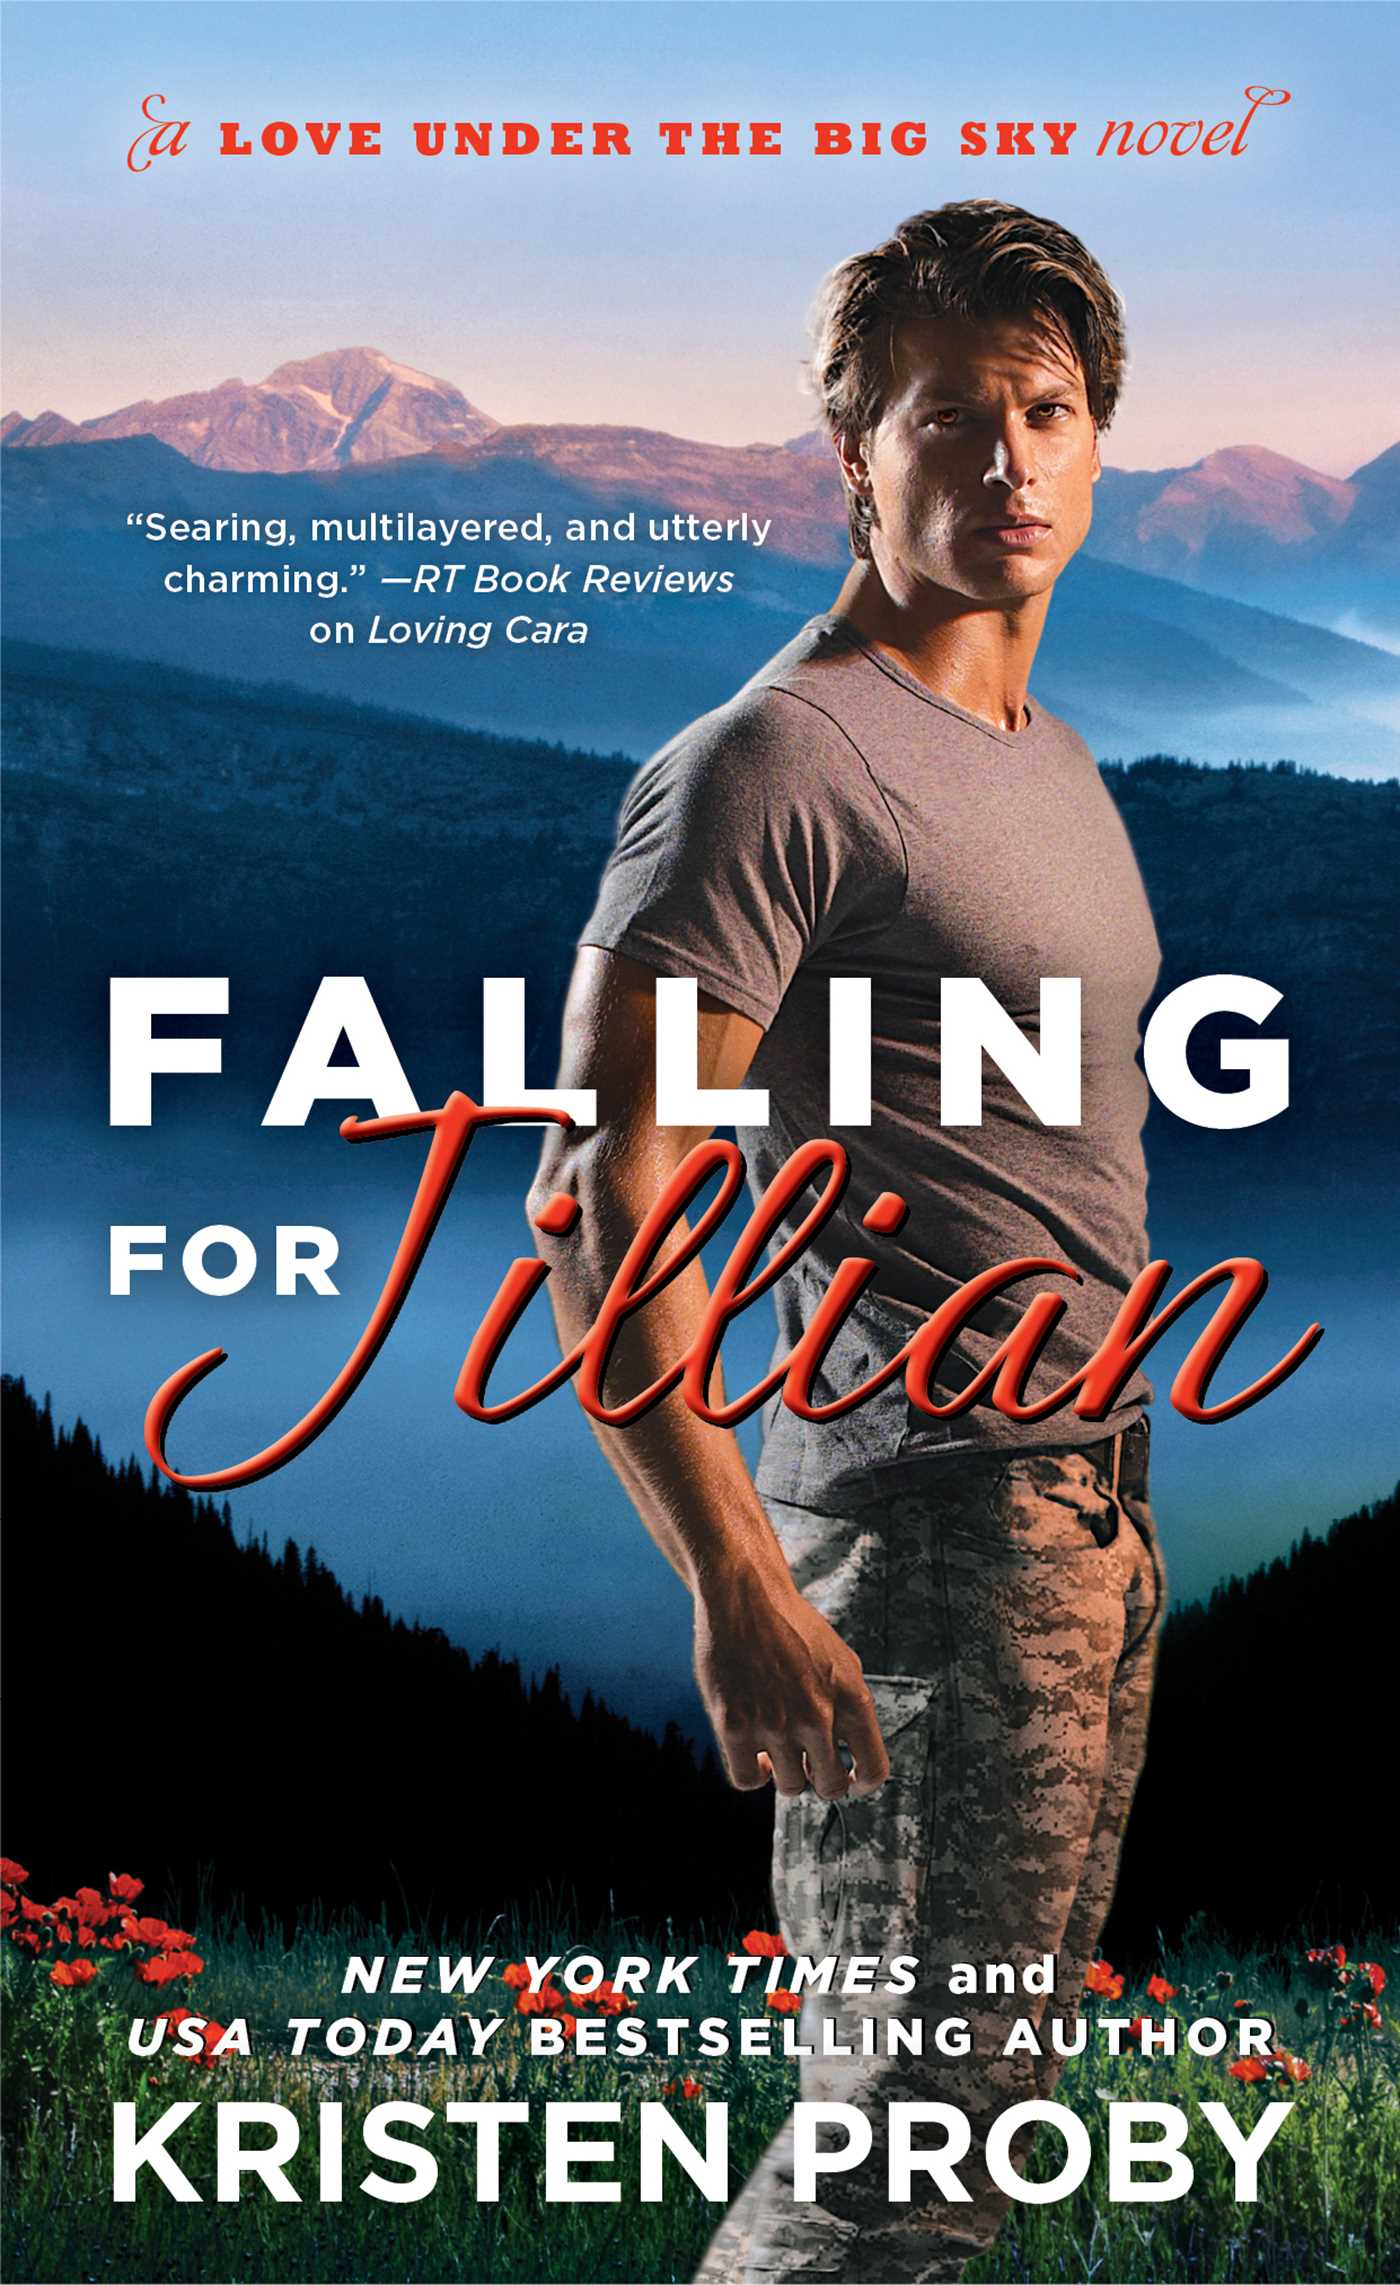 Falling-for-jillian-9781476759388_hr